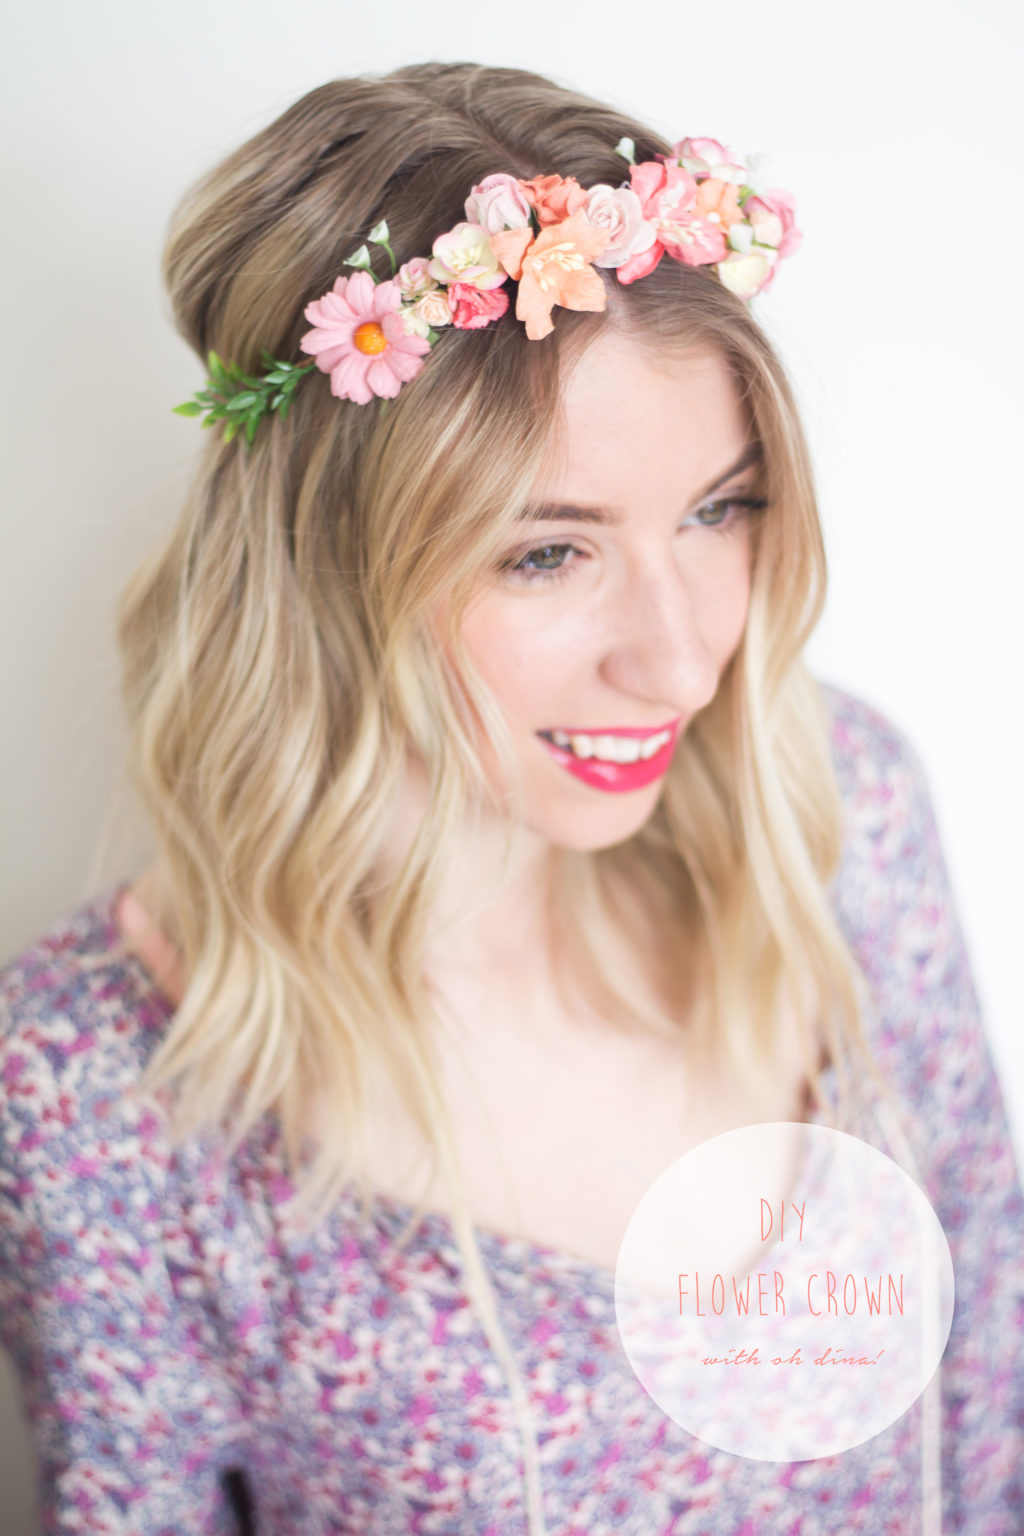 Diy flower crowns with oh dina the blondielocks life style as you probably know by now i love to diy but sometimes it is so nice to be able to make something that already has all of the directions laid out for izmirmasajfo